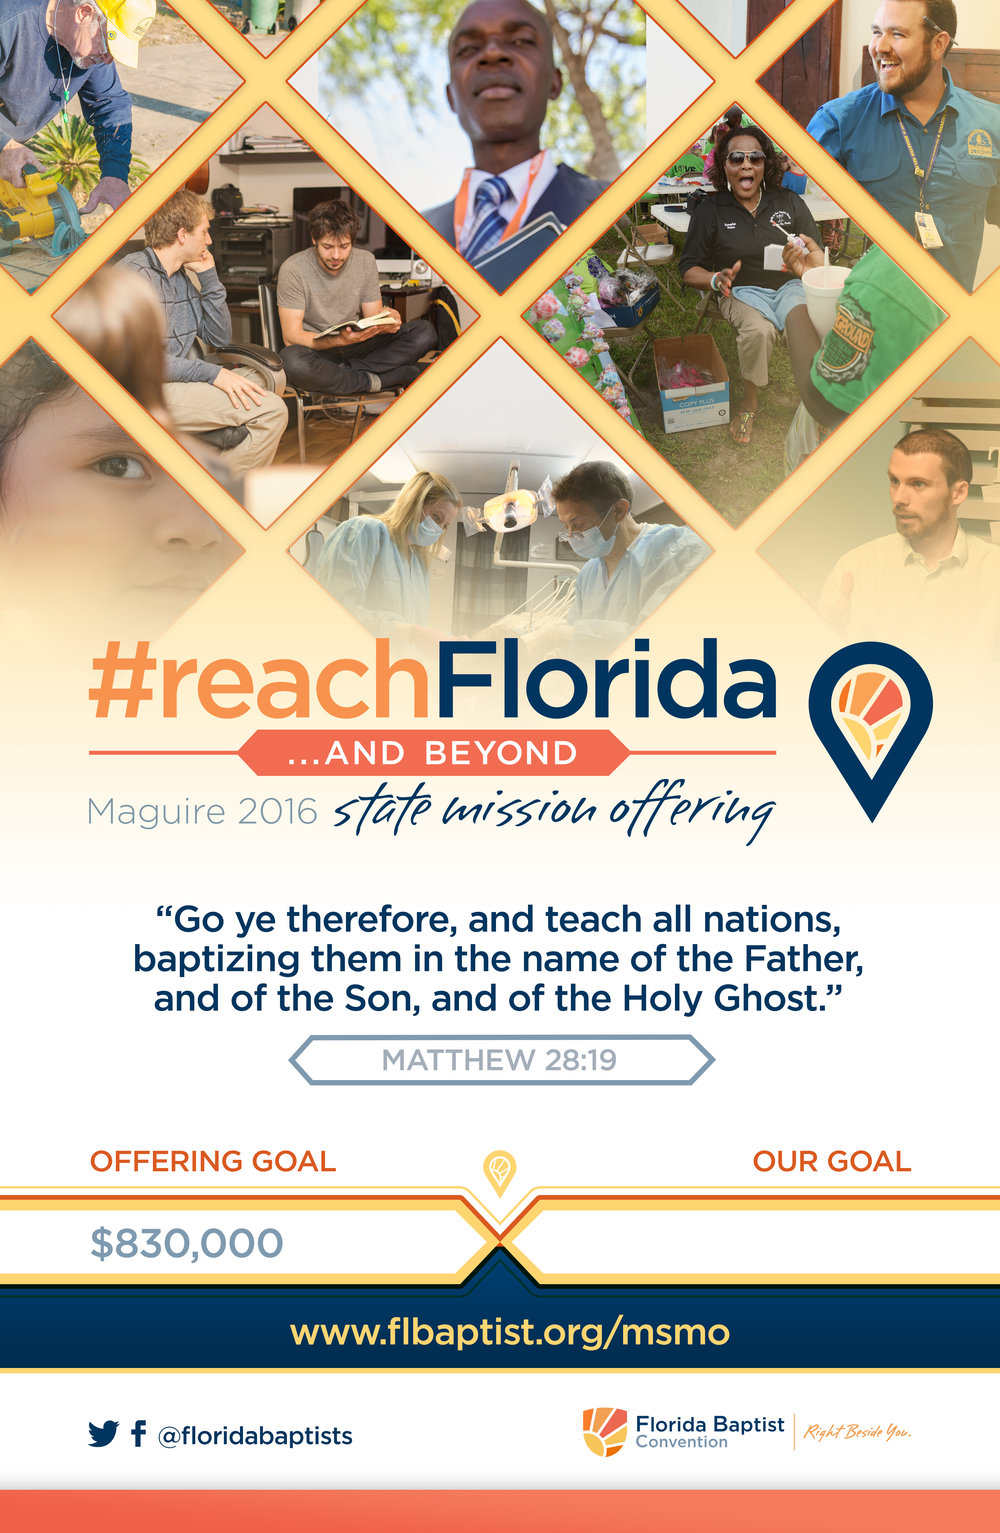 2016 Maguire State Missions Offering Poster